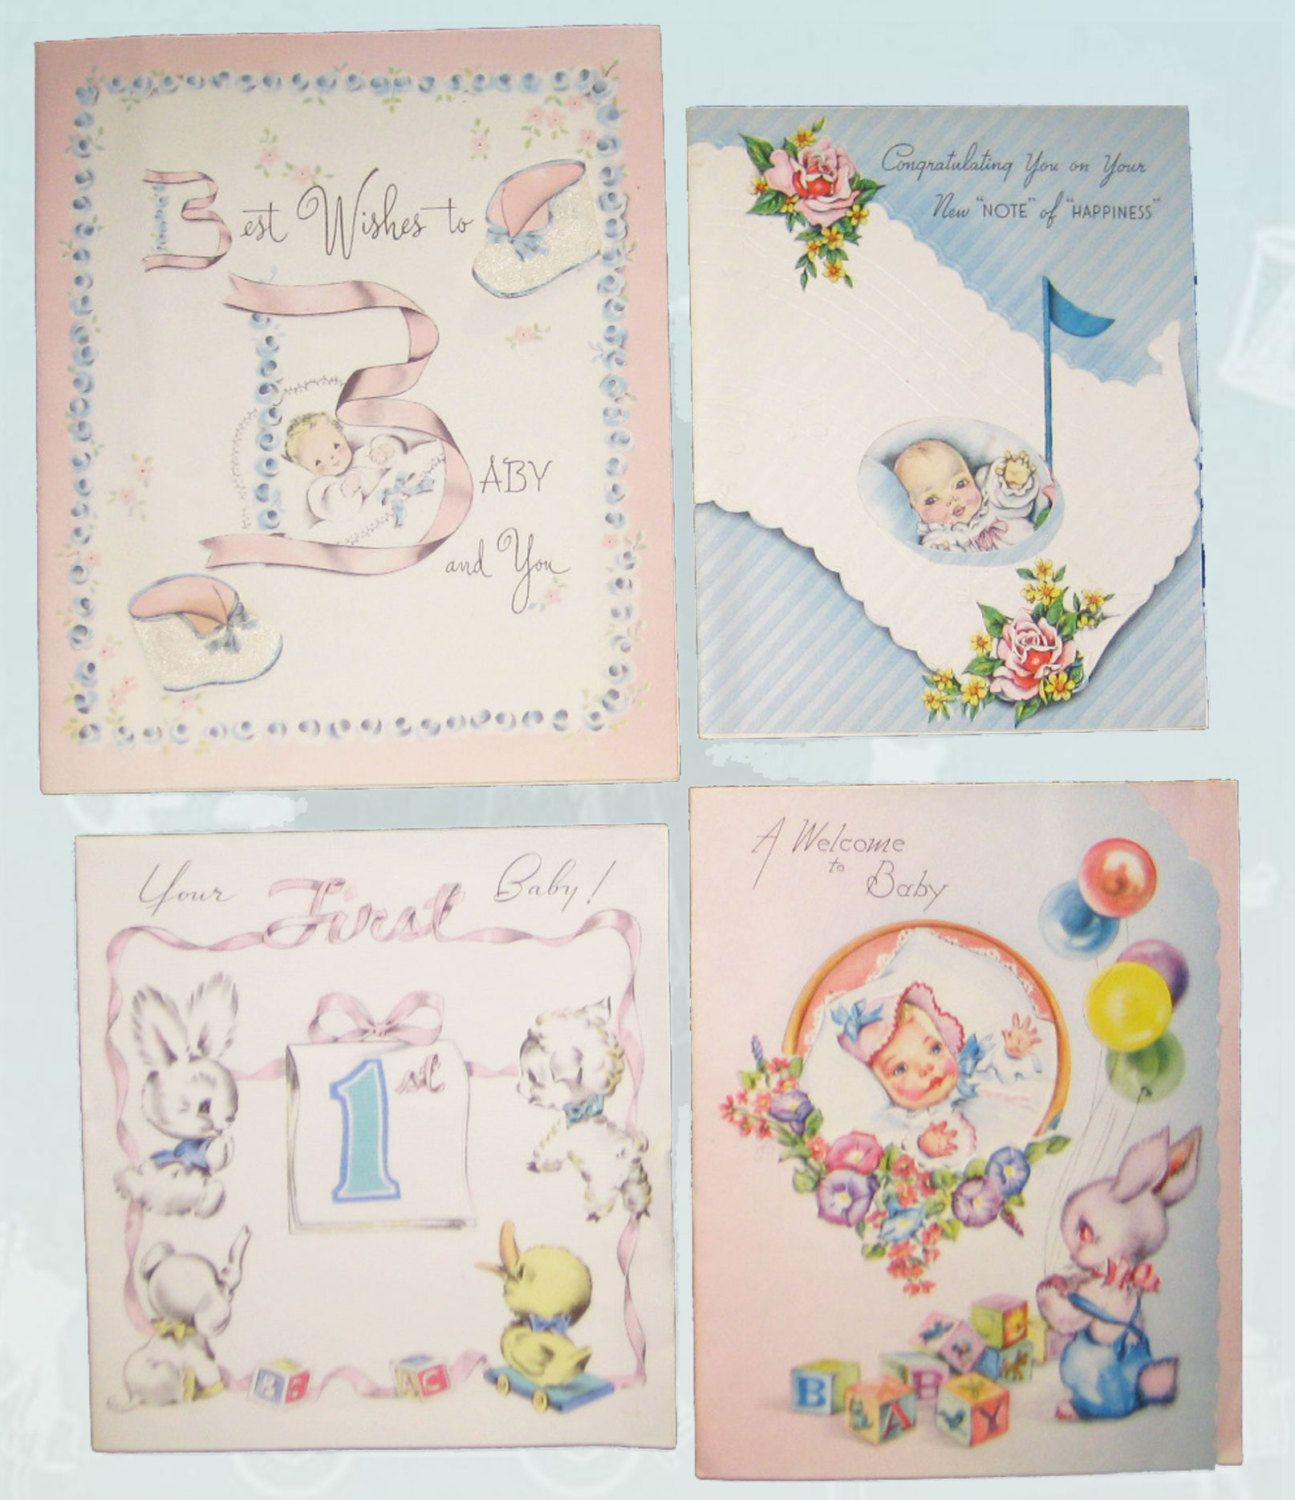 Vintage new baby congratulations greeting cards retro 1940s baby 4 vintage new baby congratulations greeting cards retro baby cards scrapbooking mixed media collage nursery decor craft supplies kristyandbryce Image collections